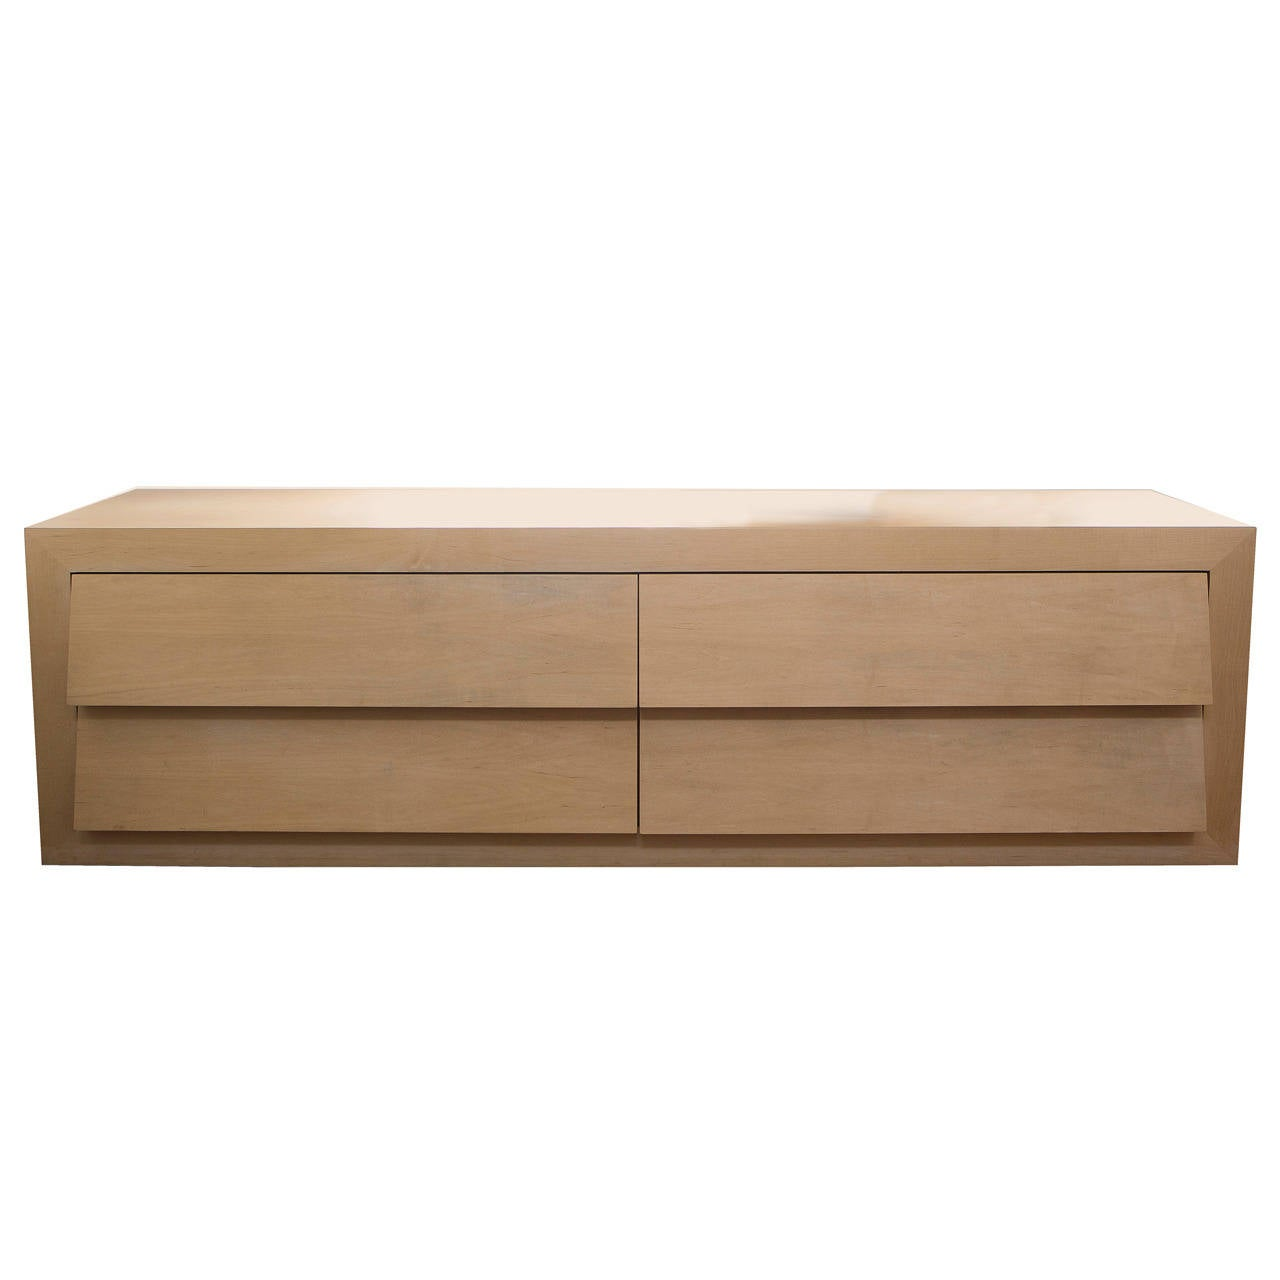 Custom dresser to match bed at 1stdibs for Matching bed and dresser